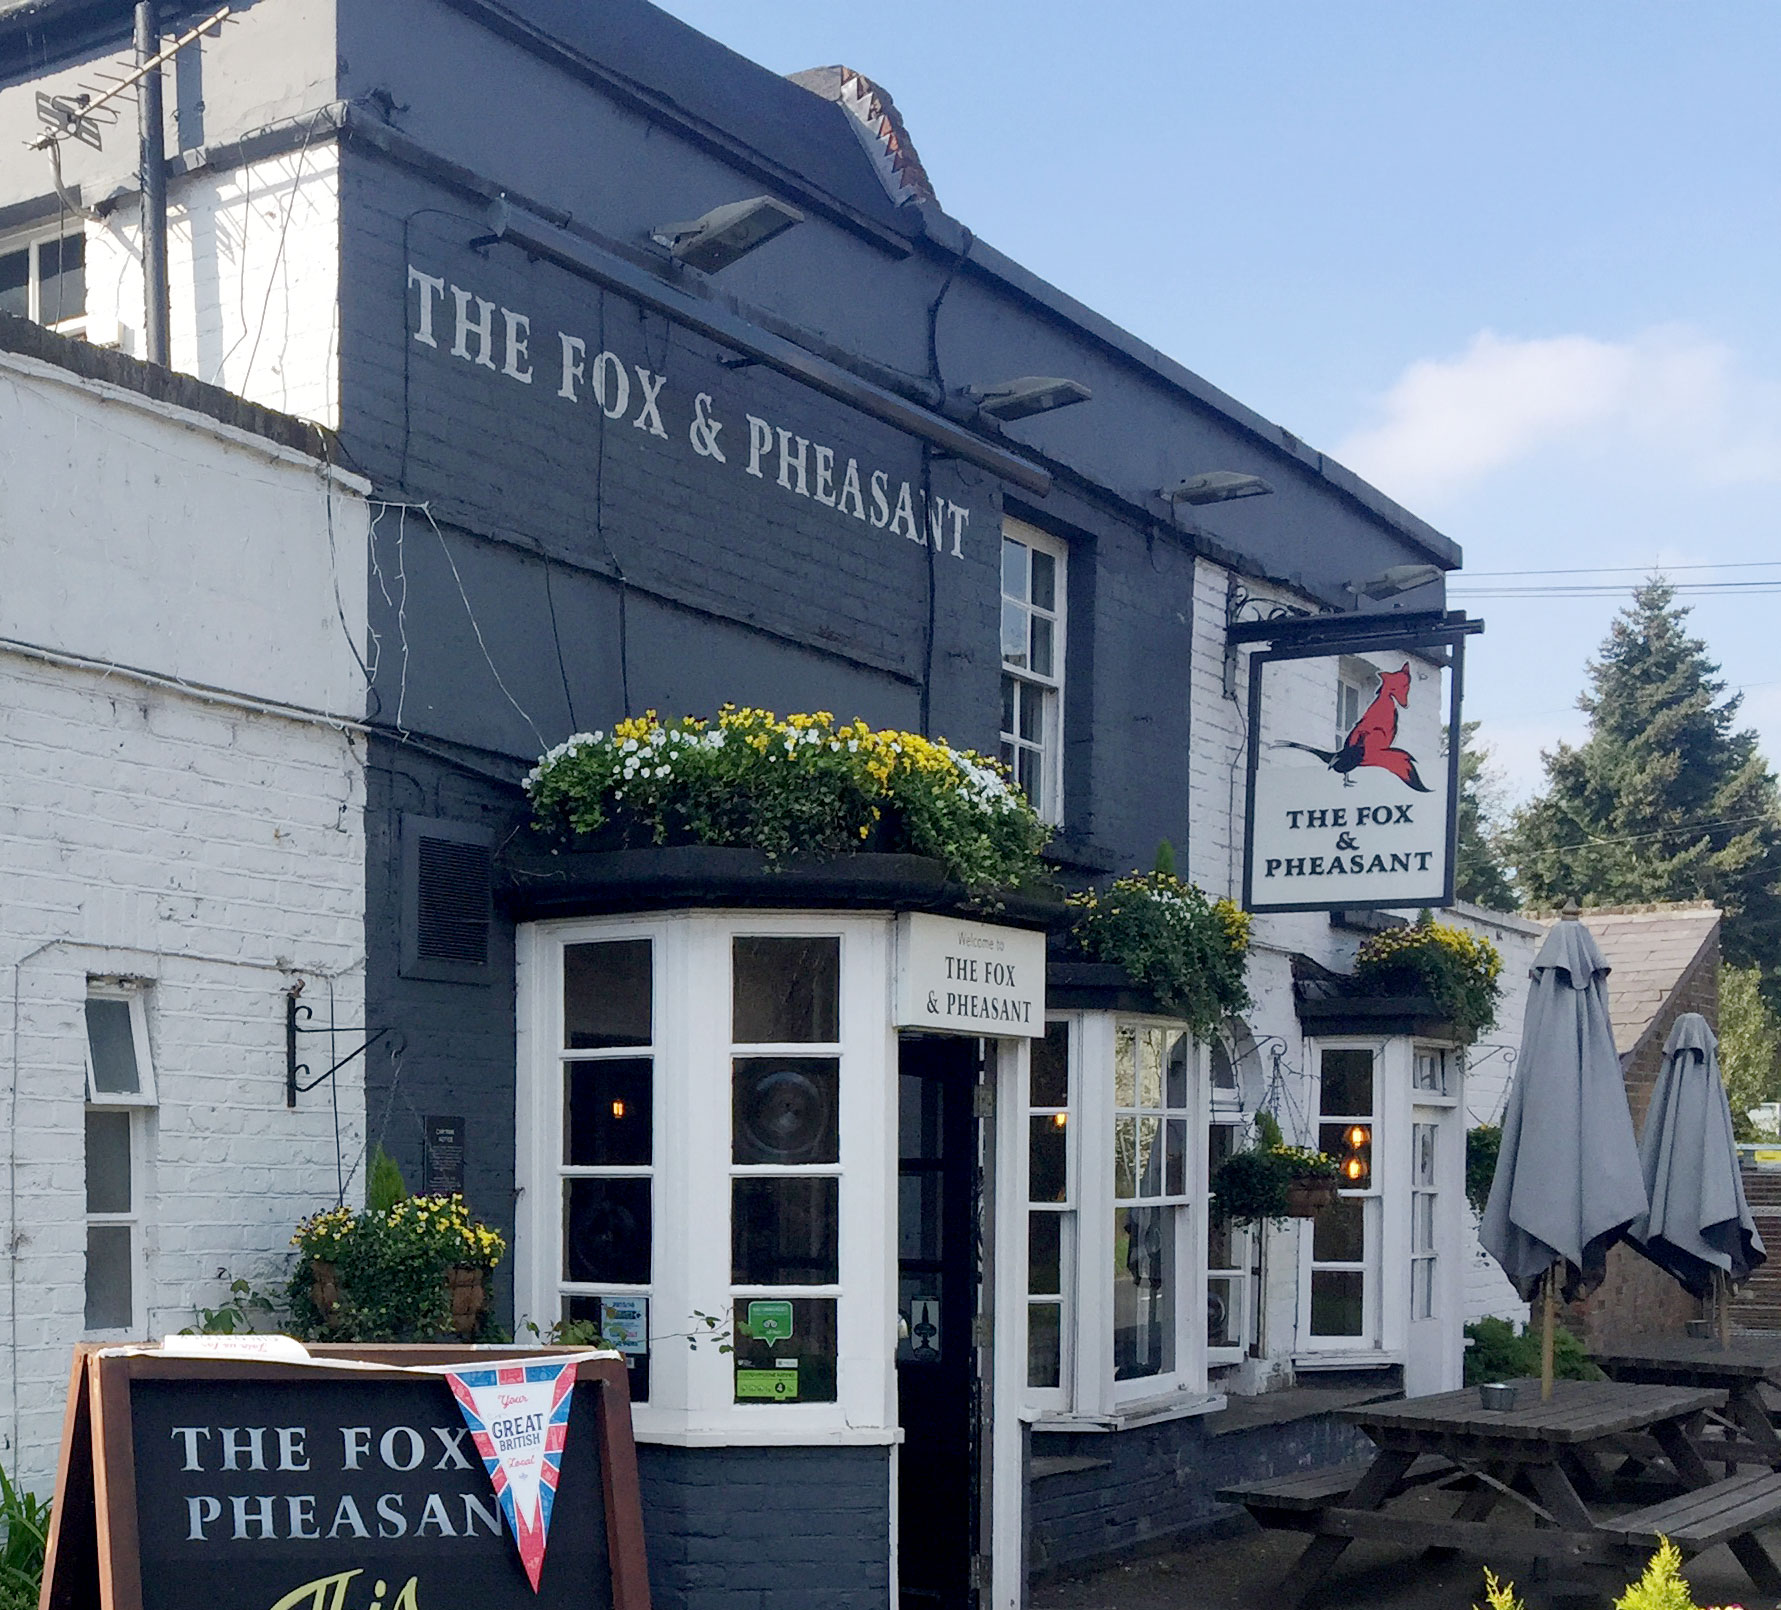 The Fox and Pheasant Pub in Stoke Poges